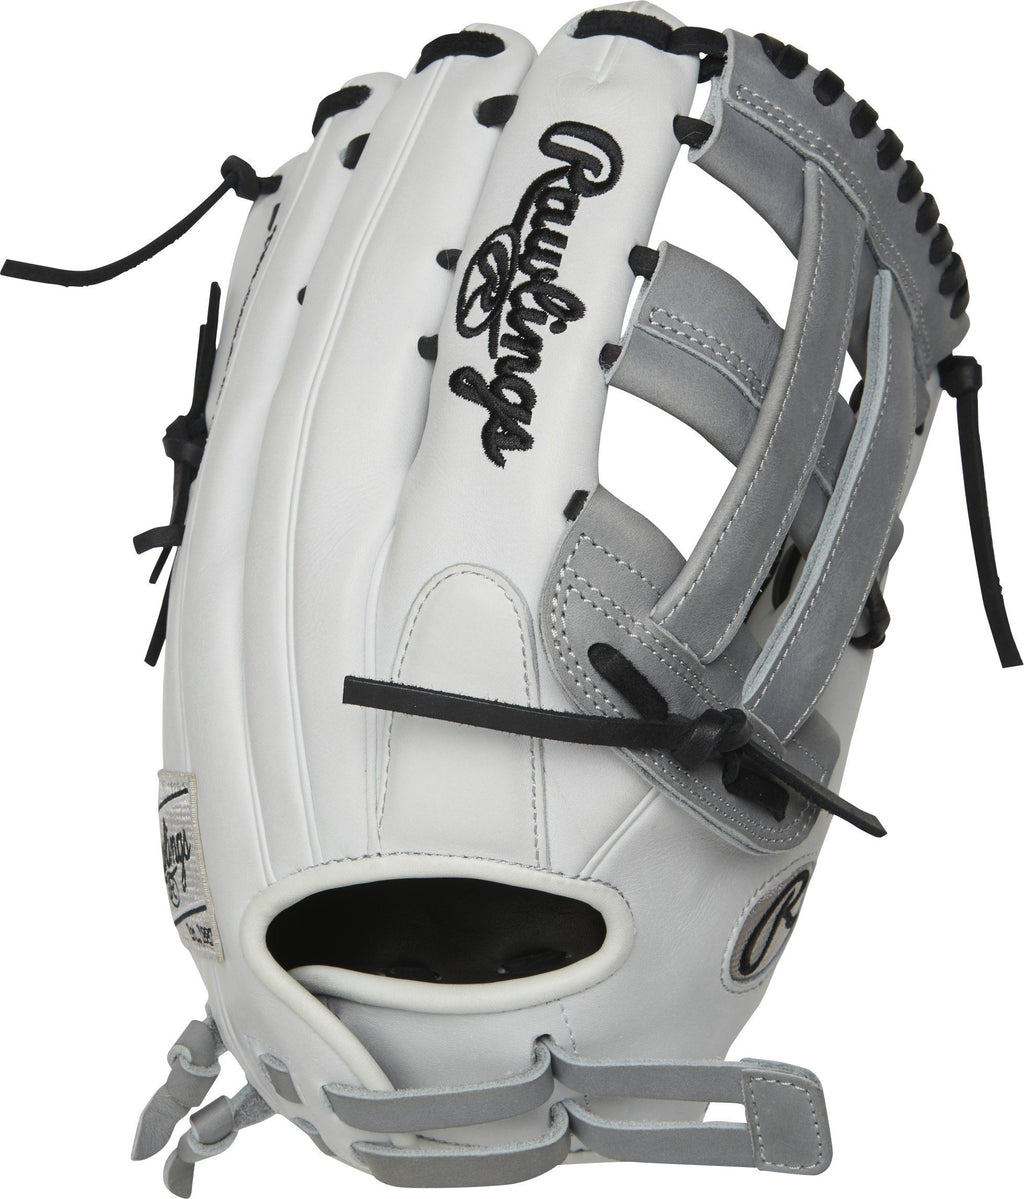 "Rawlings Heart of the Hide 12.75"" Fastpitch Softball Glove: PRO1275SB-6WG at headbangersports.com"